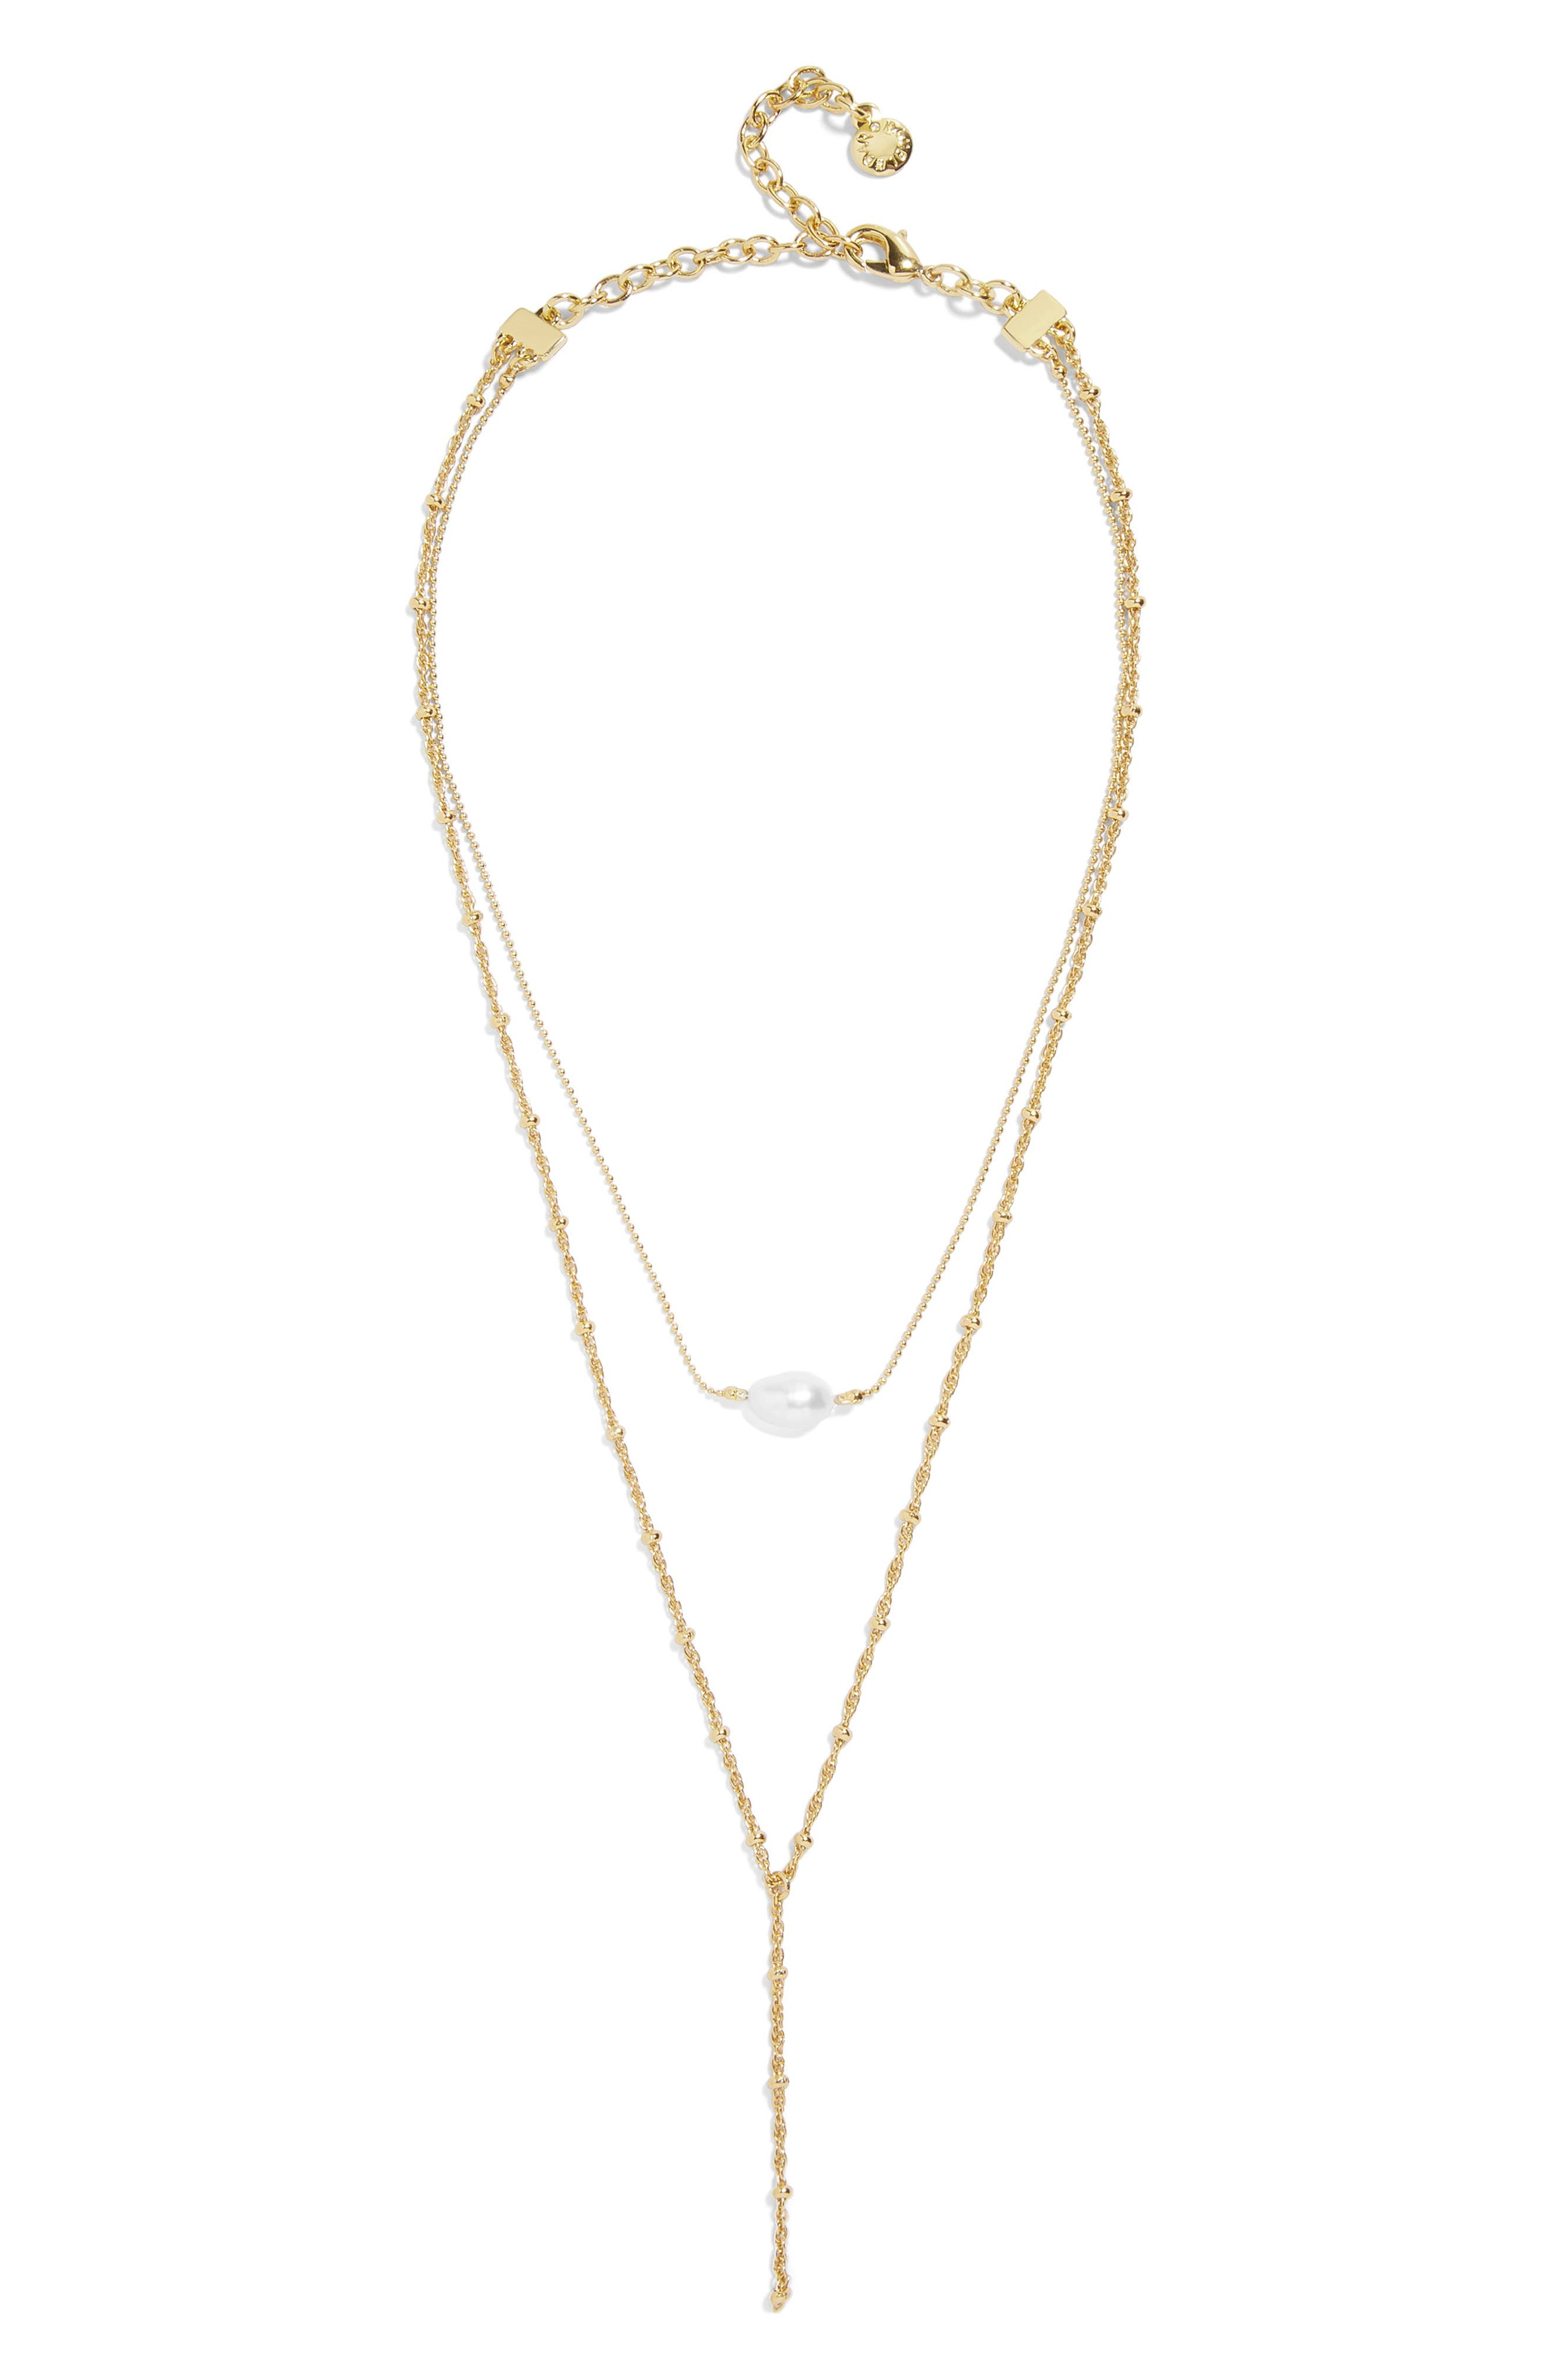 Harmonia Pearl Layered Y-Necklace,                             Main thumbnail 1, color,                             WHITE